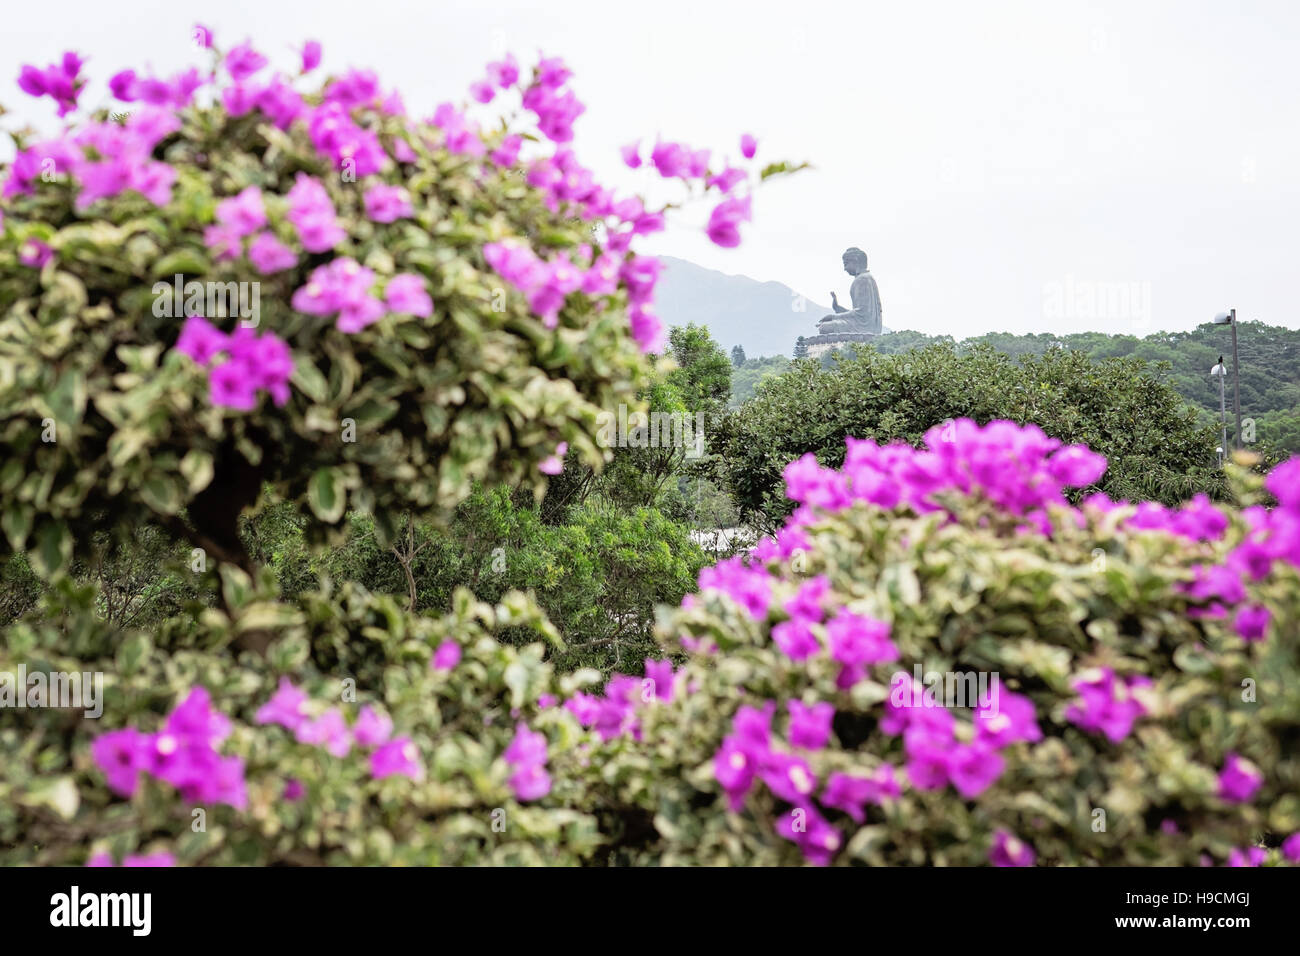 View of Big Buddha through purple bougainvillea flowers | Blick auf den Grossen Buddha durch lila Bougainville Blumen - Stock Image